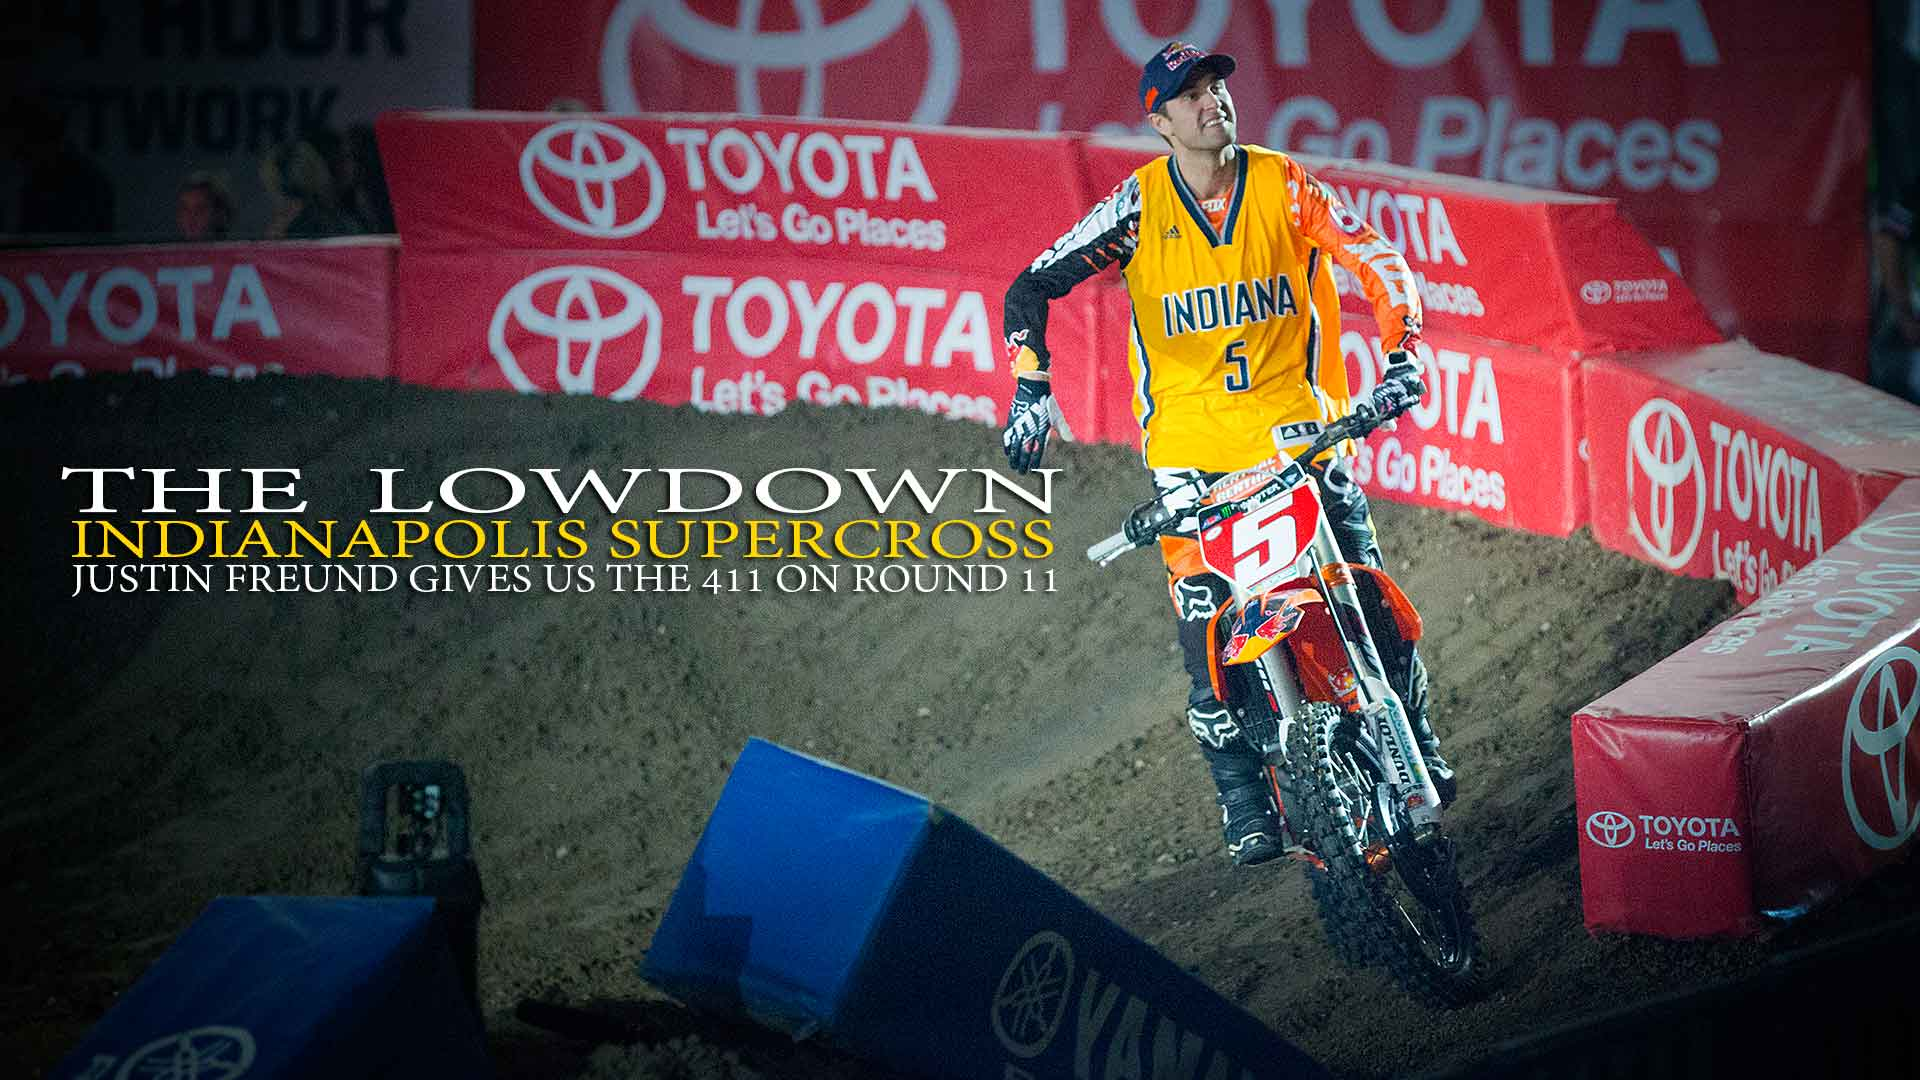 The Lowdown: Indianapolis Supercross